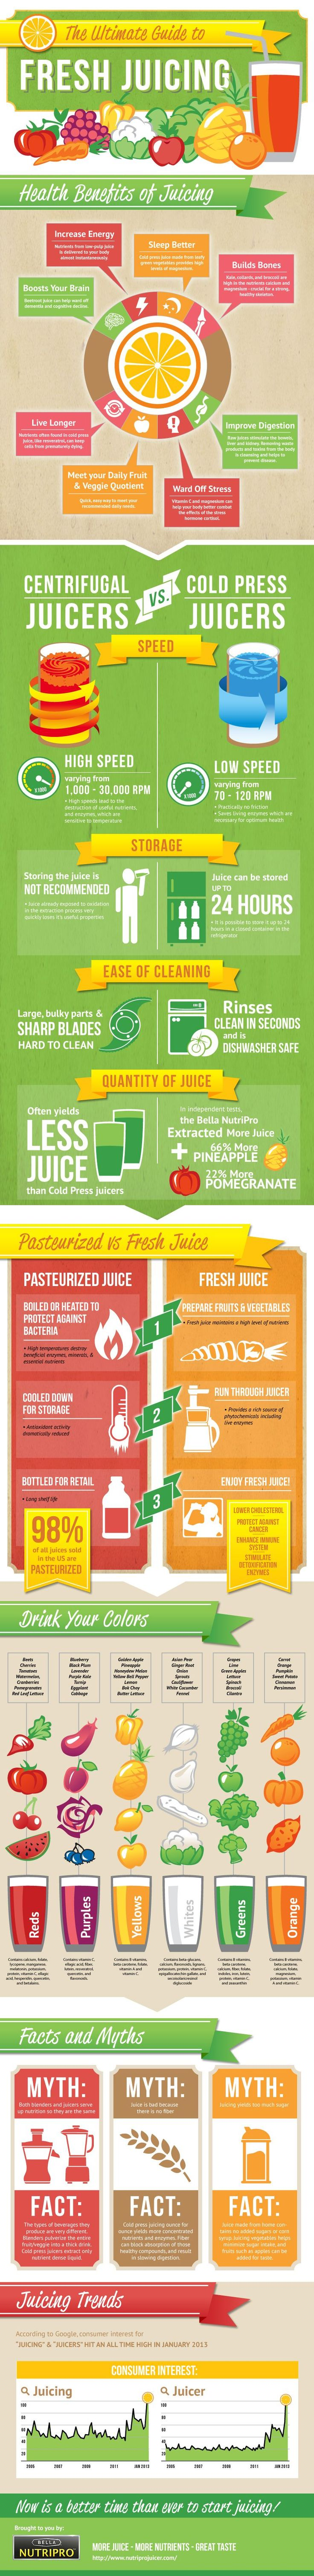 "98% of ""juice"" on the market is pasteurized and watered down. Convenience comes at a high cost. For best results, make fresh juice so you know exactly when it was pressed, what's in it and what the conditions were when it was made. Fresh juice also comes with a multitude of health benefits such as increased energy, less stress, and improved digestion"